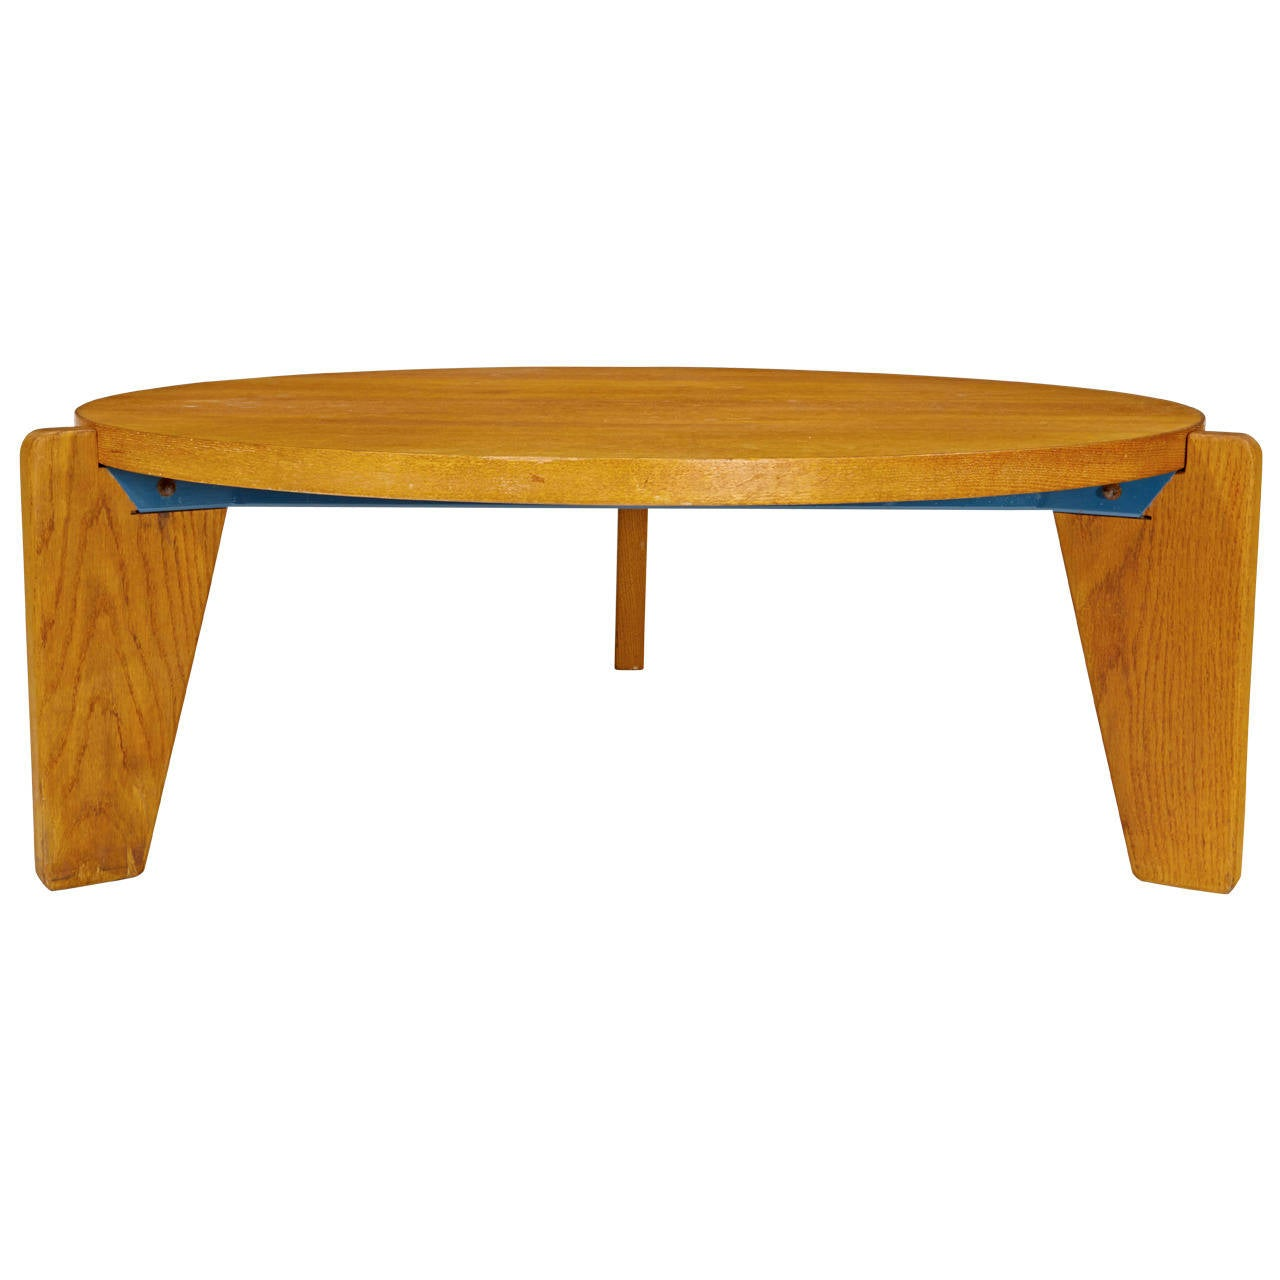 "Jean Prouve ""Africa"" Low Table"